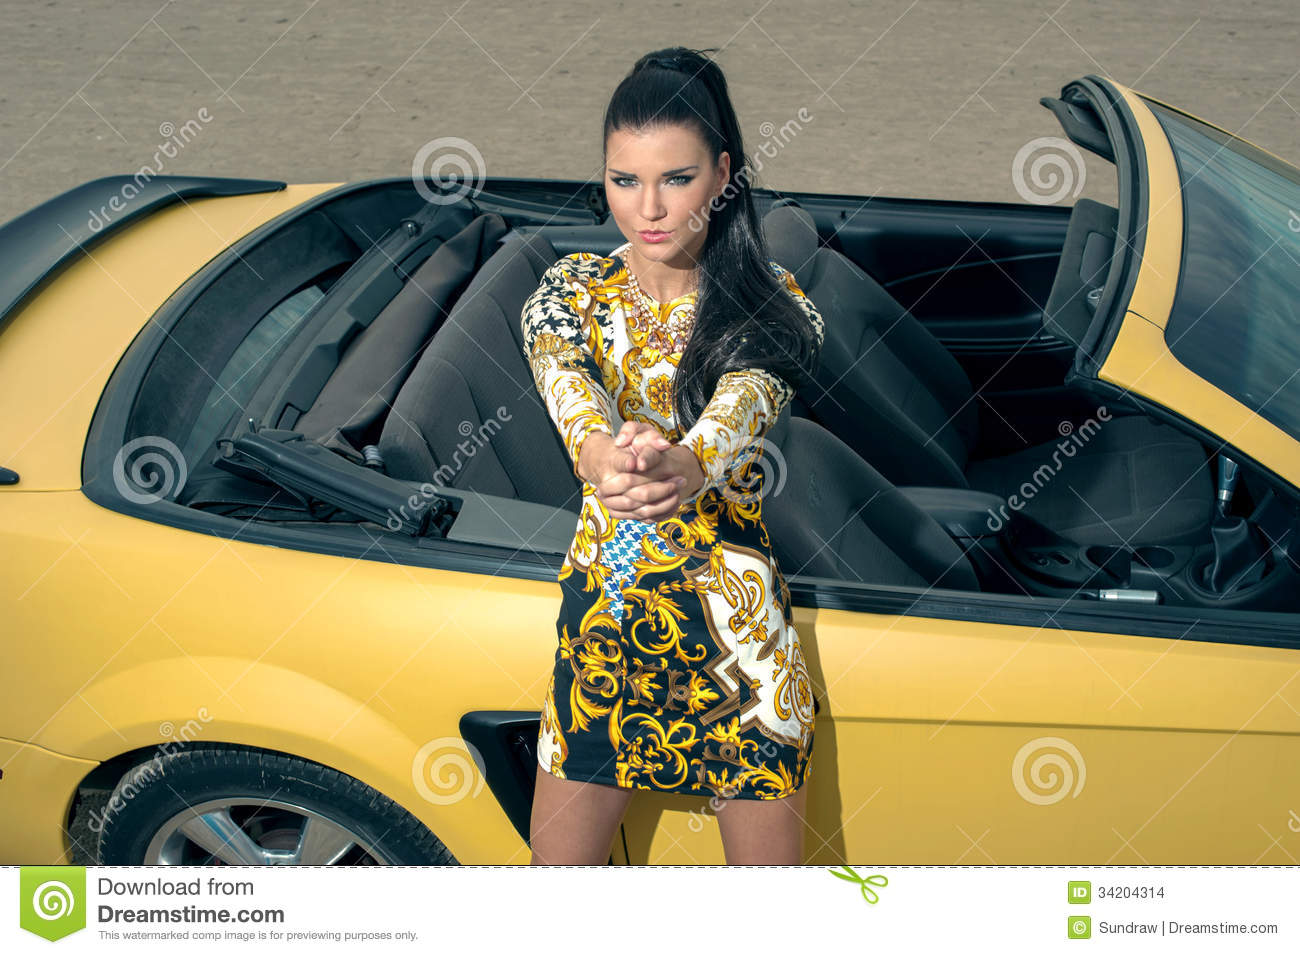 belle fille posant pr s de la voiture de sport images stock image 34204314. Black Bedroom Furniture Sets. Home Design Ideas